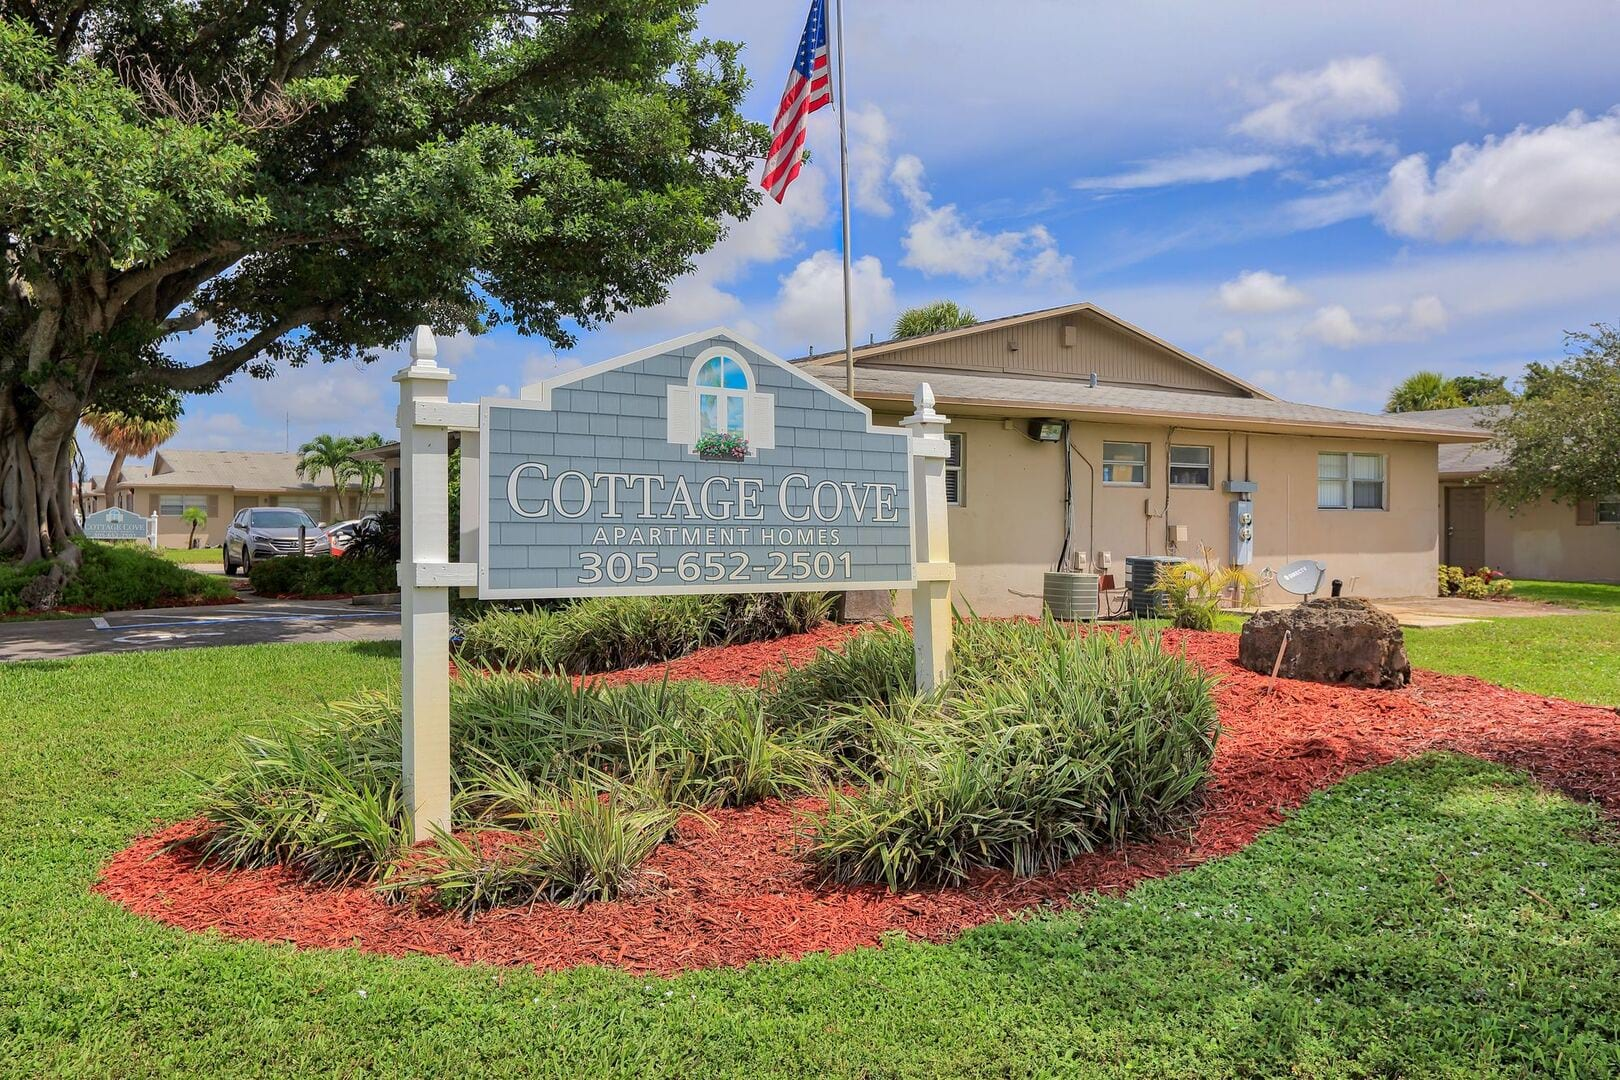 apartments for rent in miami fl cottage cove apartments home rh cottage coveapts com cottage cove apartments nixa mo cottage cove apartments miami gardens